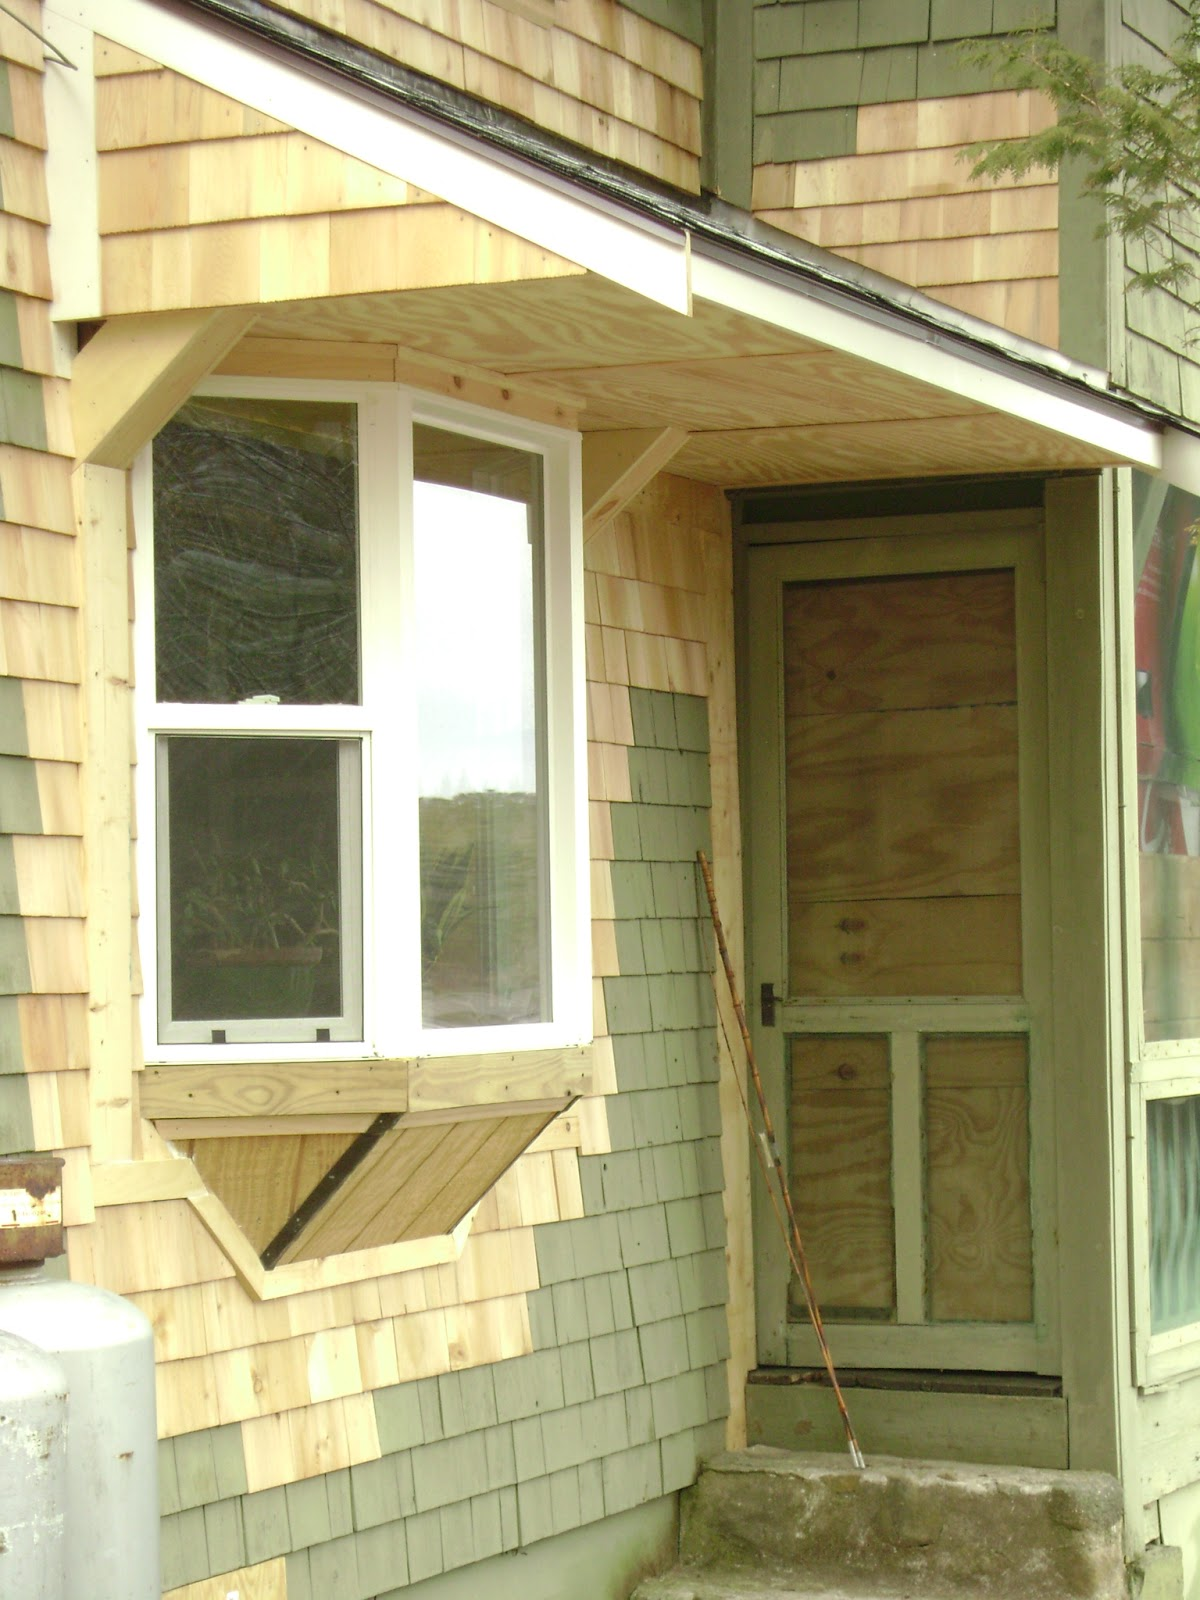 Bay Window Roof : Long pond endeavor company bay window with new shed roof